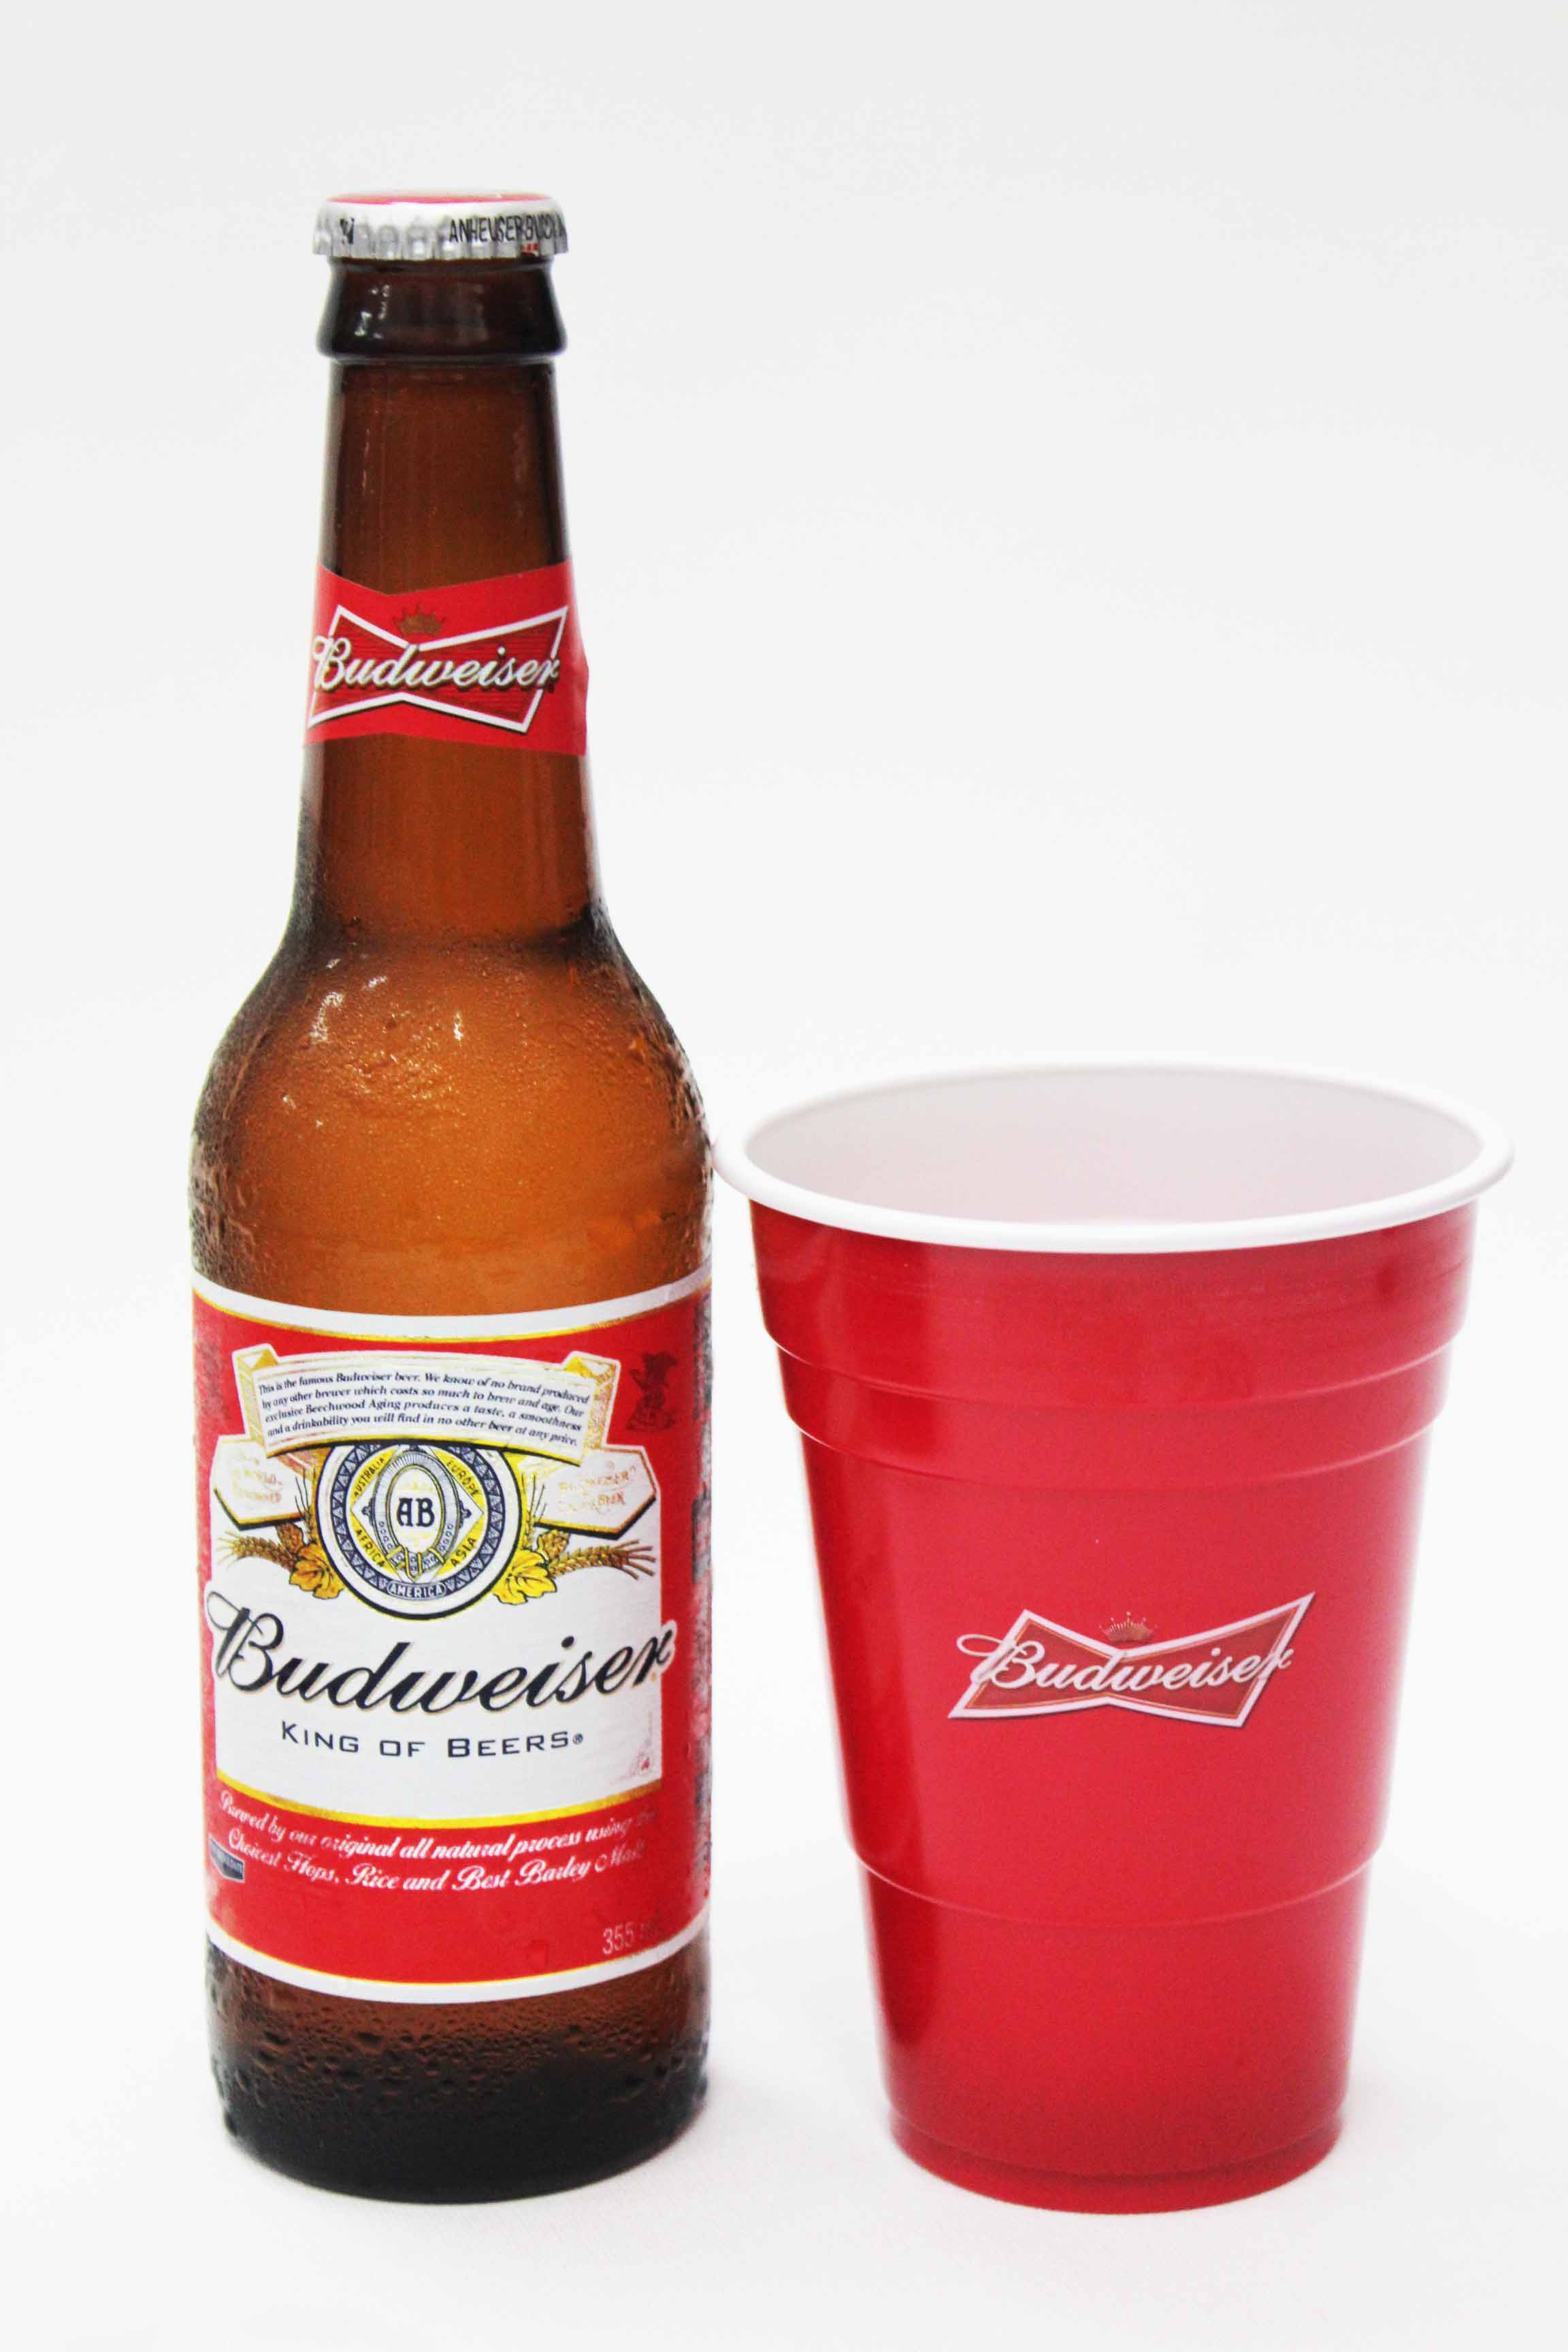 Budweiser and custom redds cups